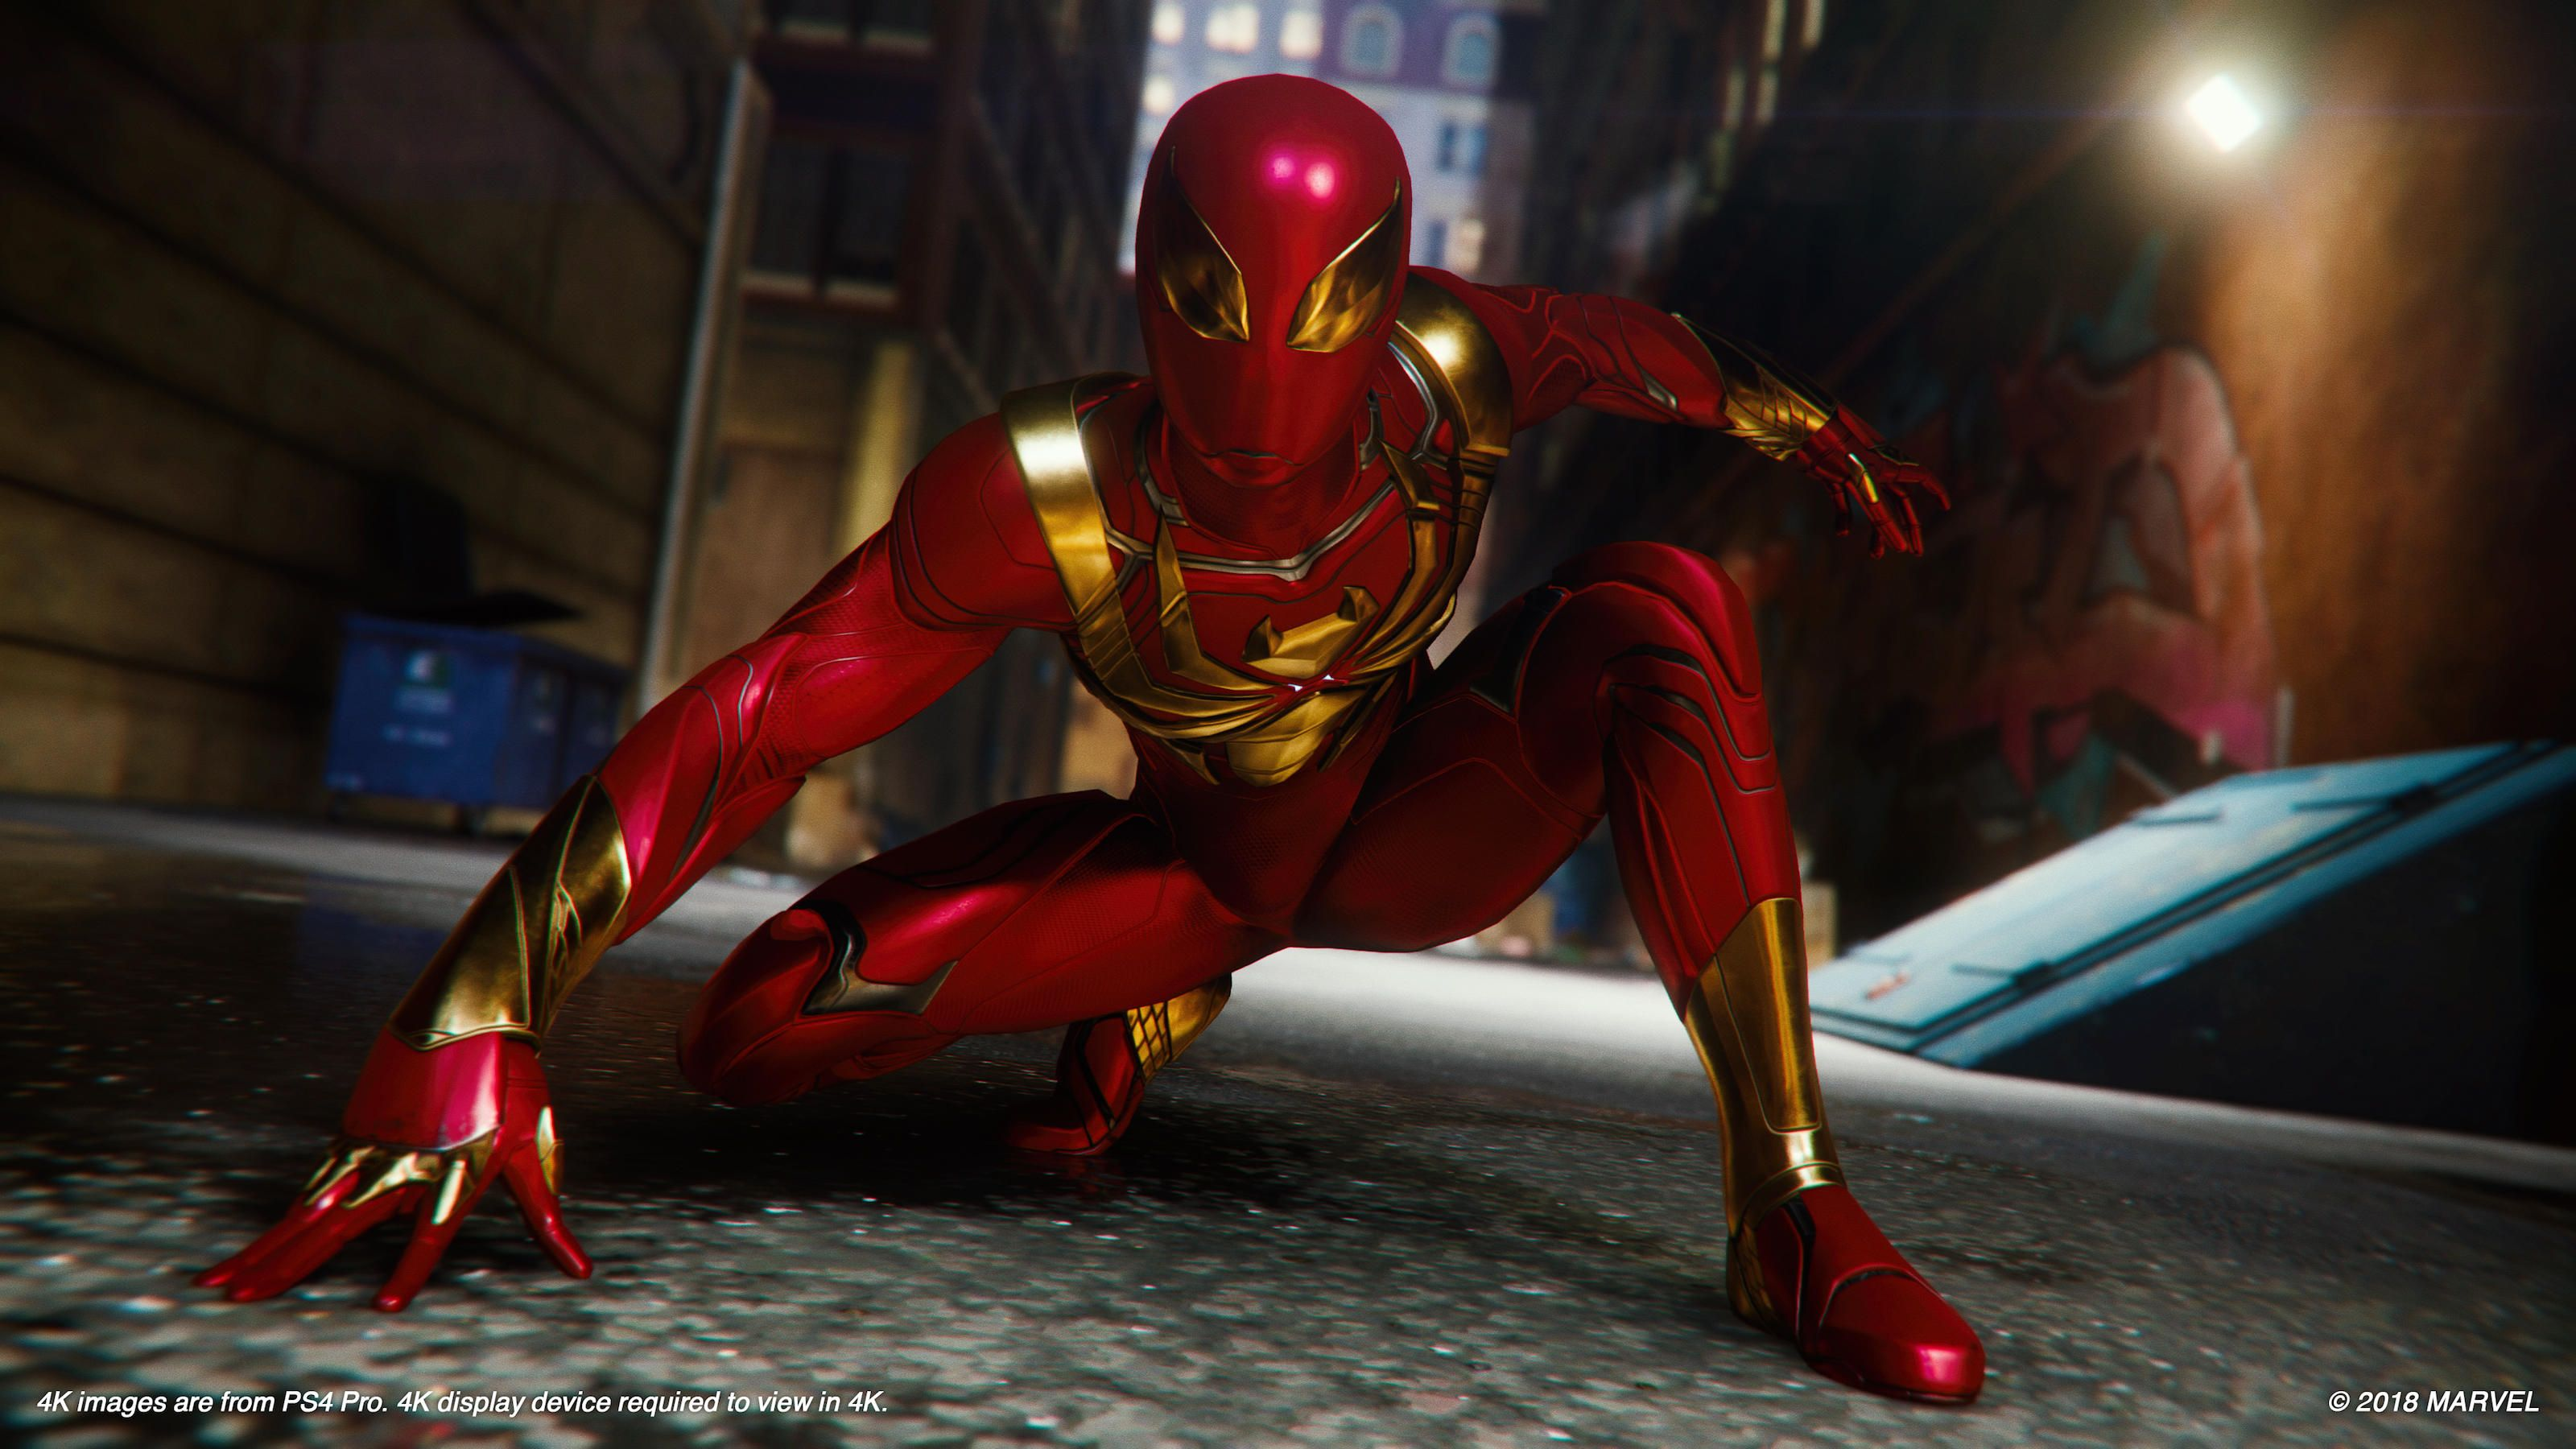 Download The 'Marvel's Spider-Man: Turf Wars' DLC Chapter Now